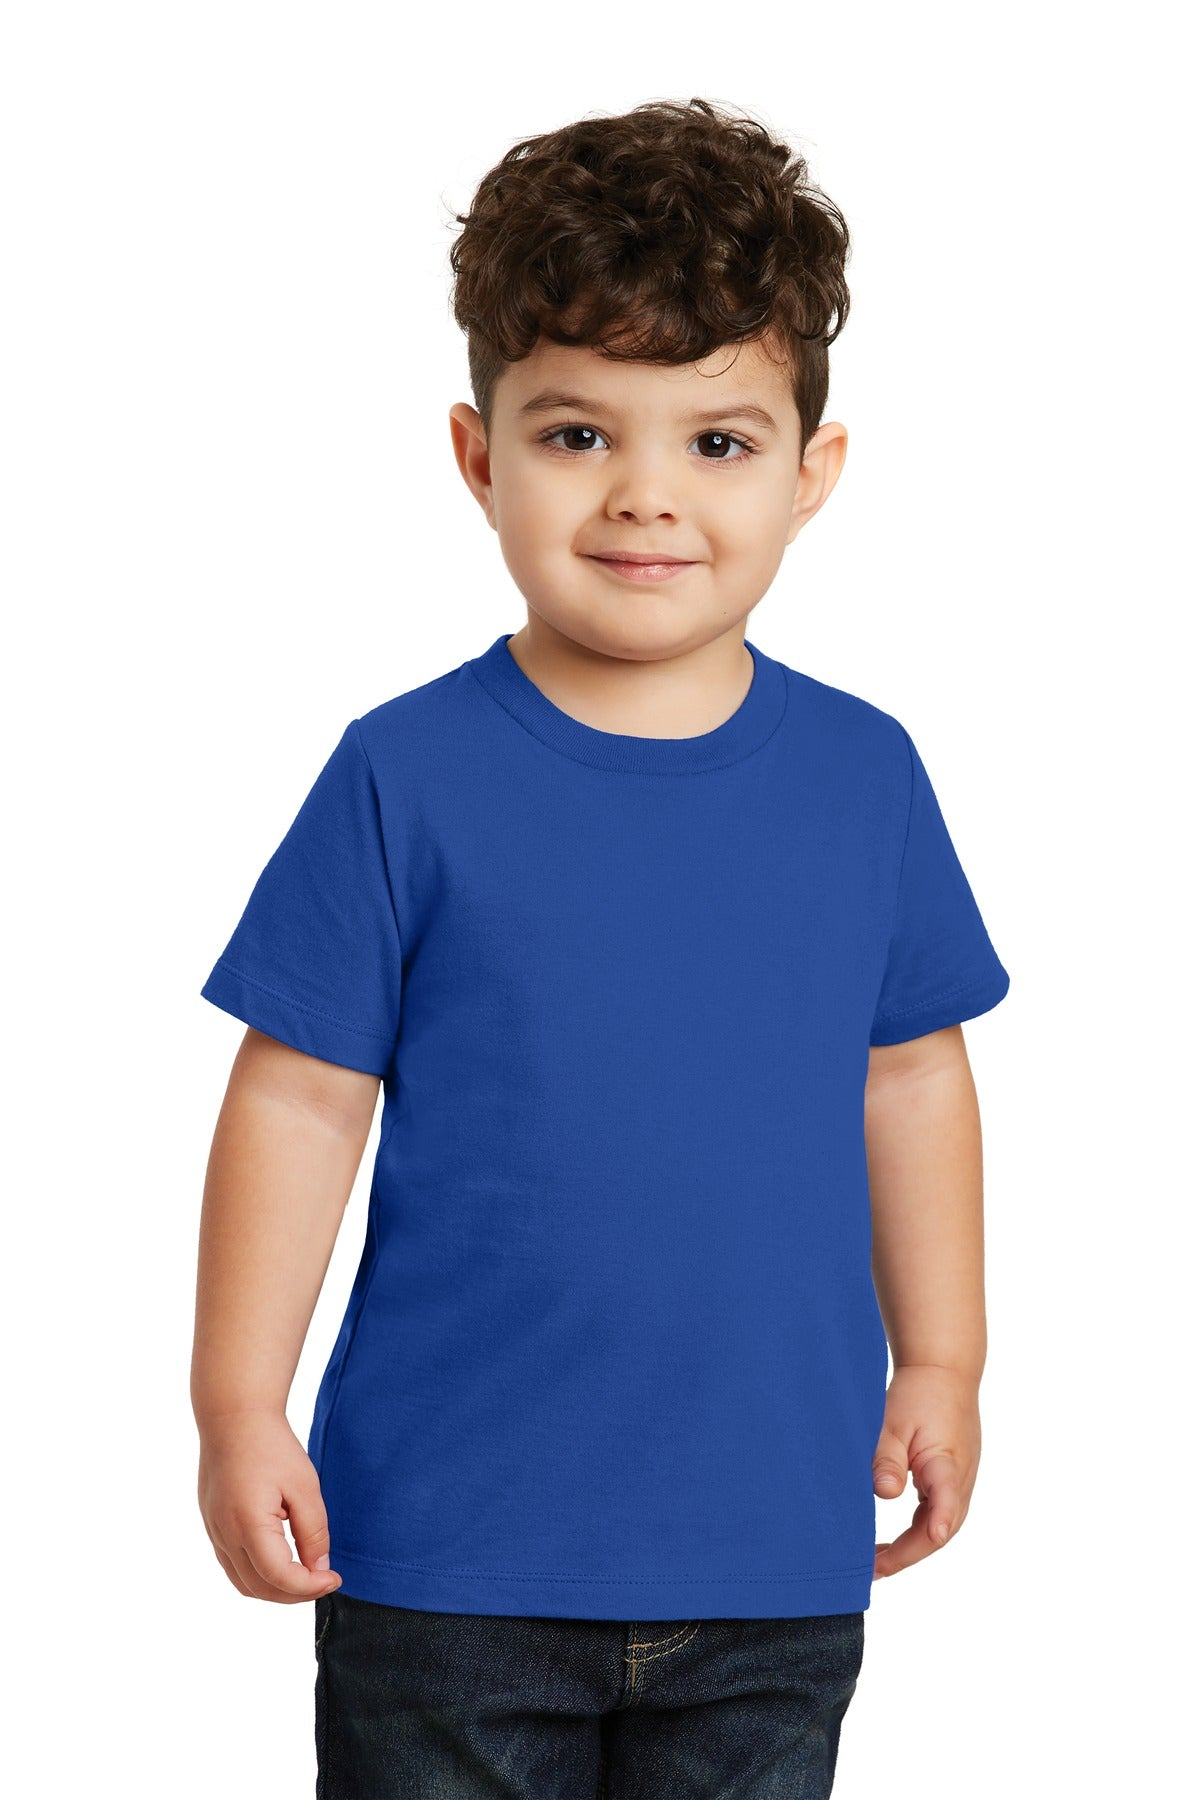 True Royal Port & Company Toddler Fan Favorite T-Shirt